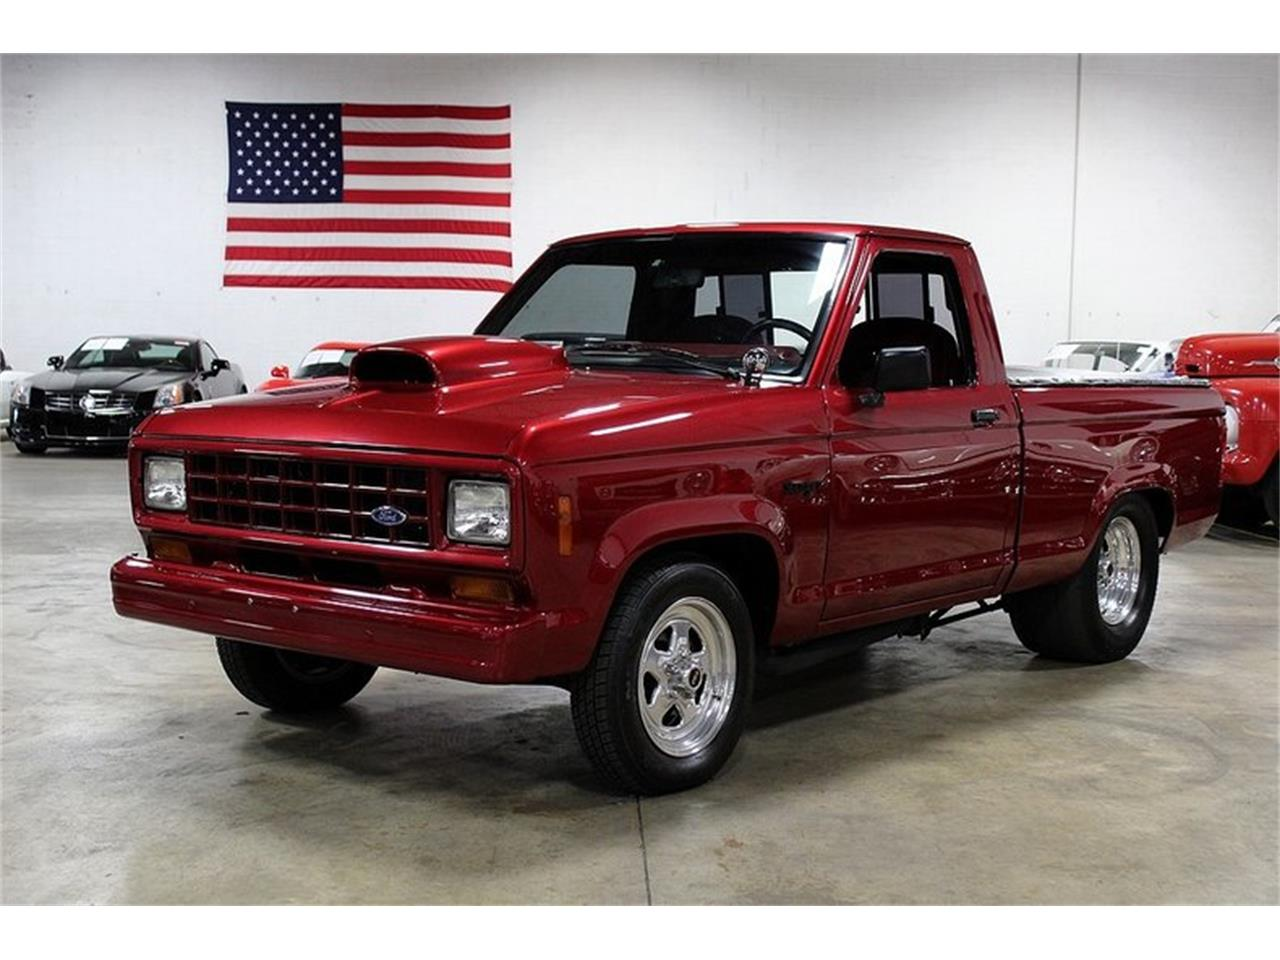 Large picture of 86 ranger ohkl